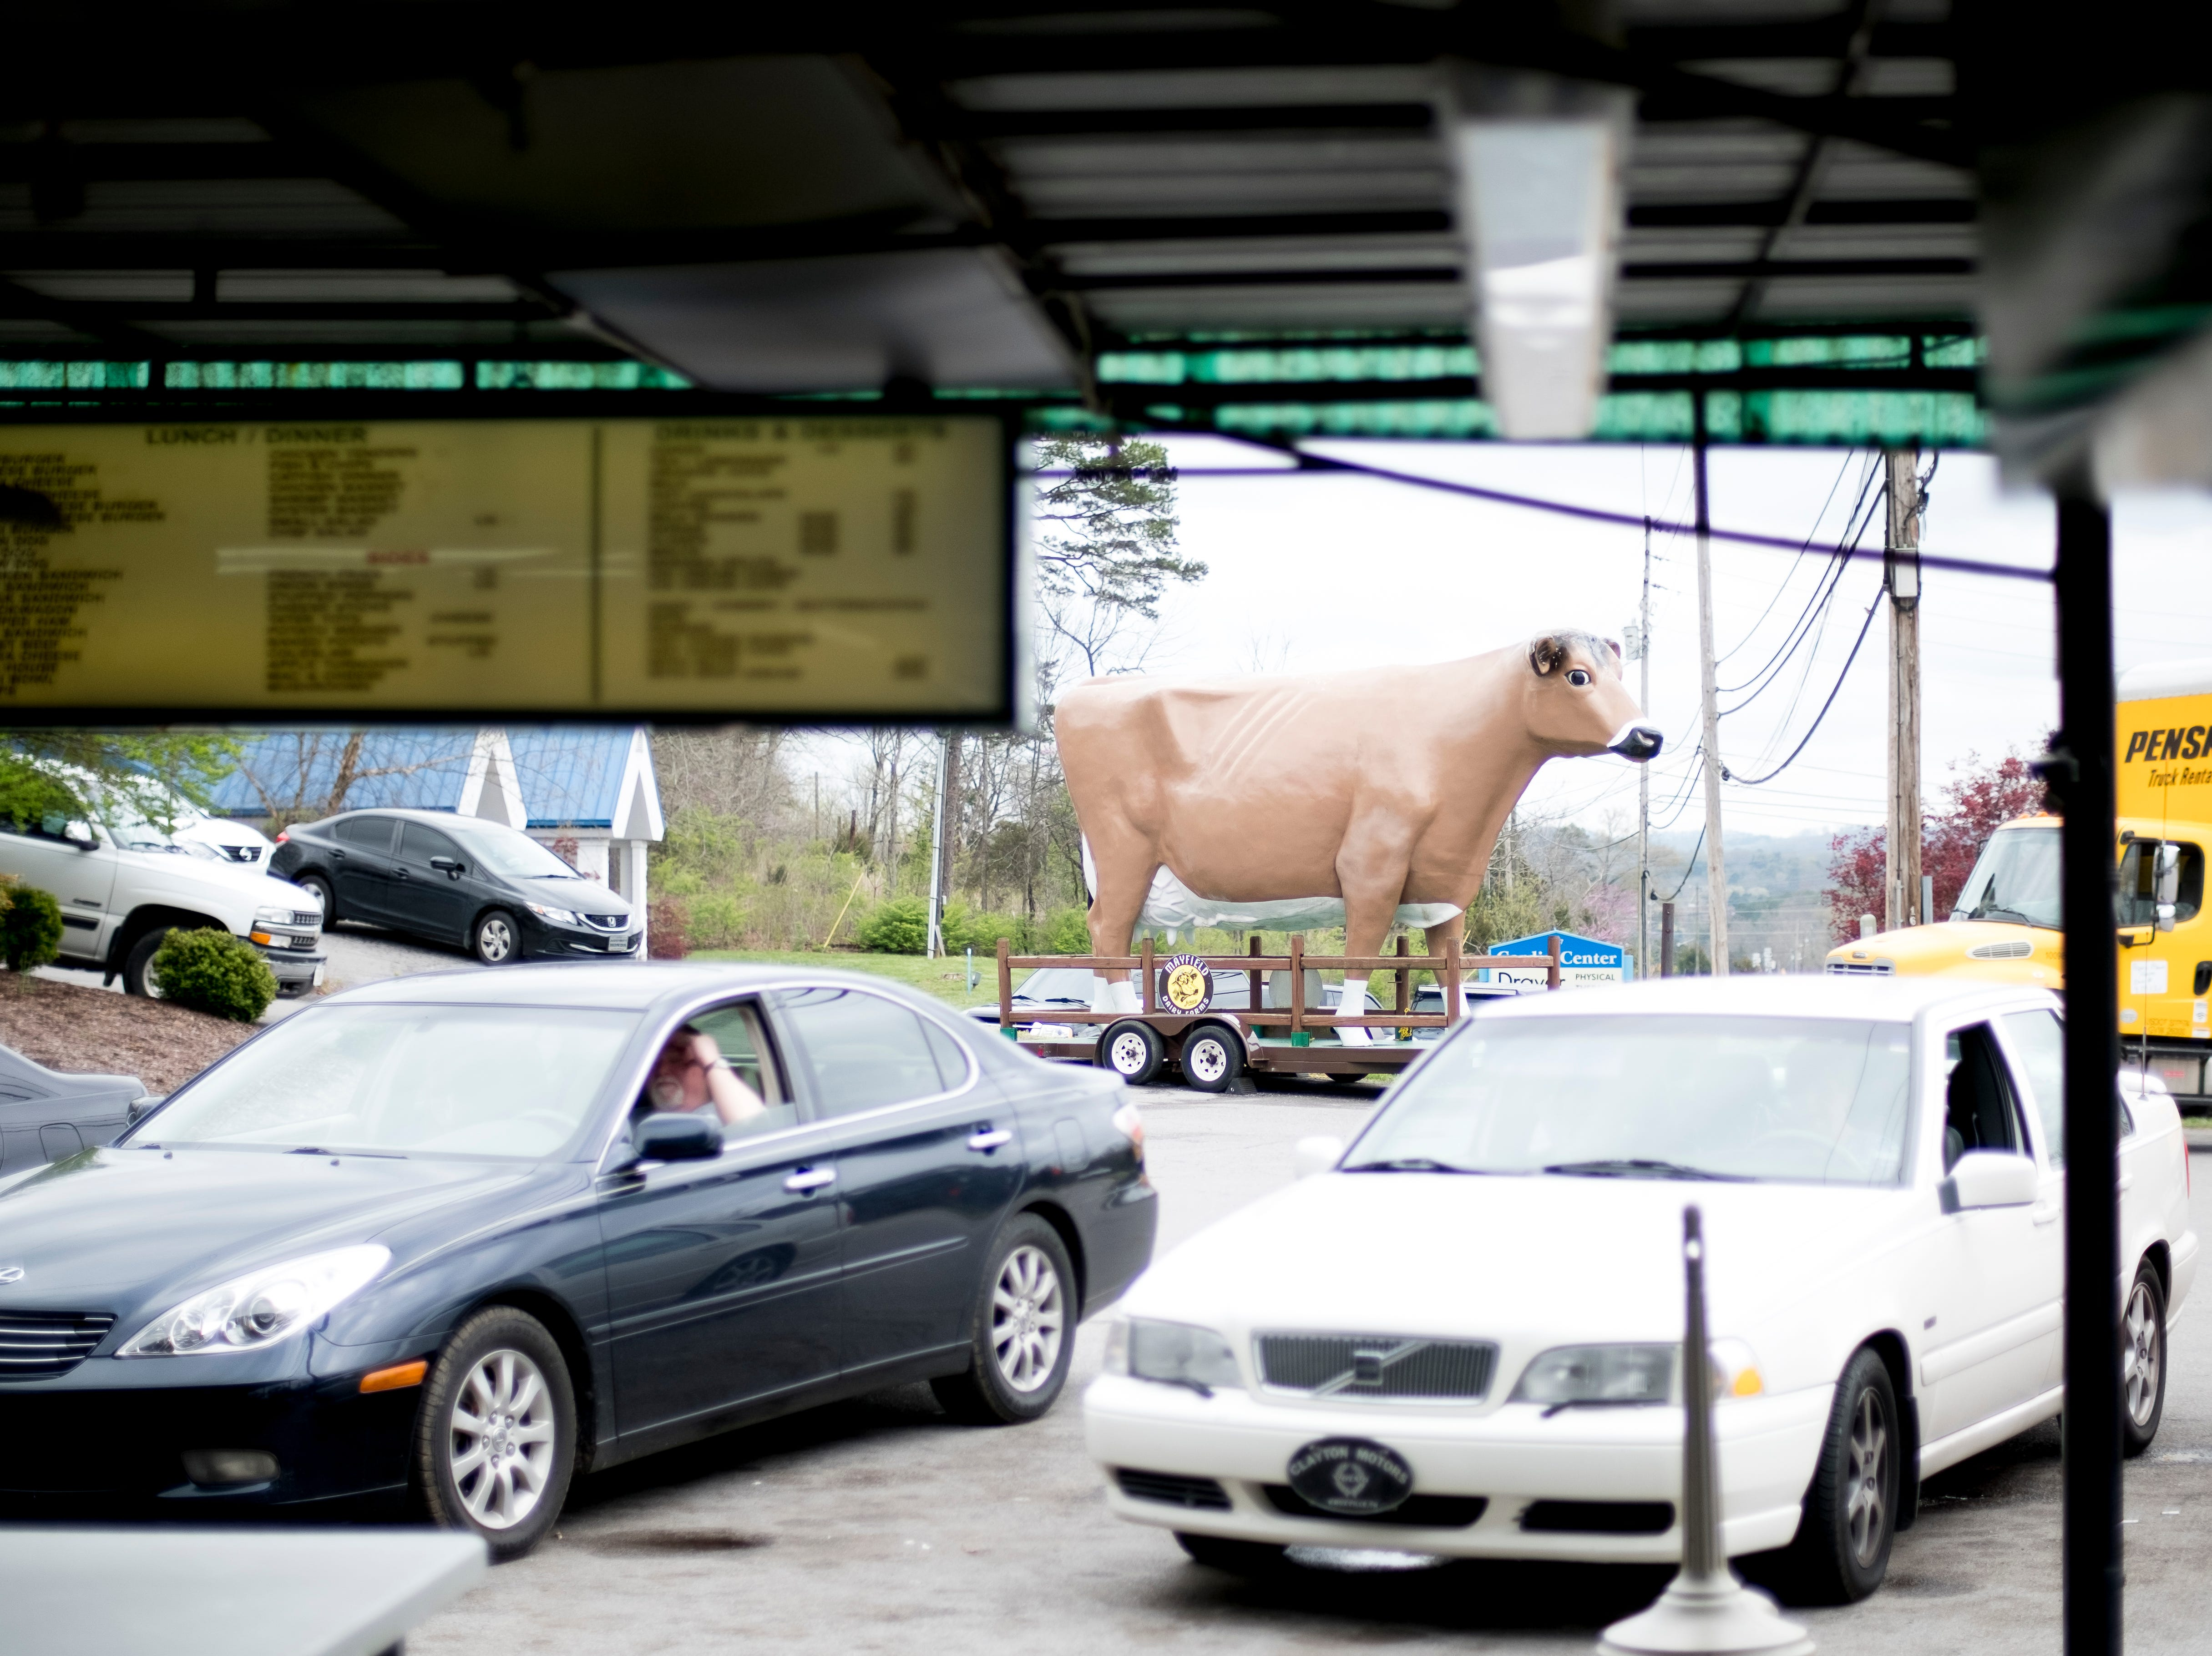 The large landmark Mayfield cow beside Cardin's Drive-In on Asheville Highway in Knoxville, Tennessee on Friday, April 5, 2019. The popular drive-in is celebrating 60 years of business this Saturday with sixty cent ice cream cones.